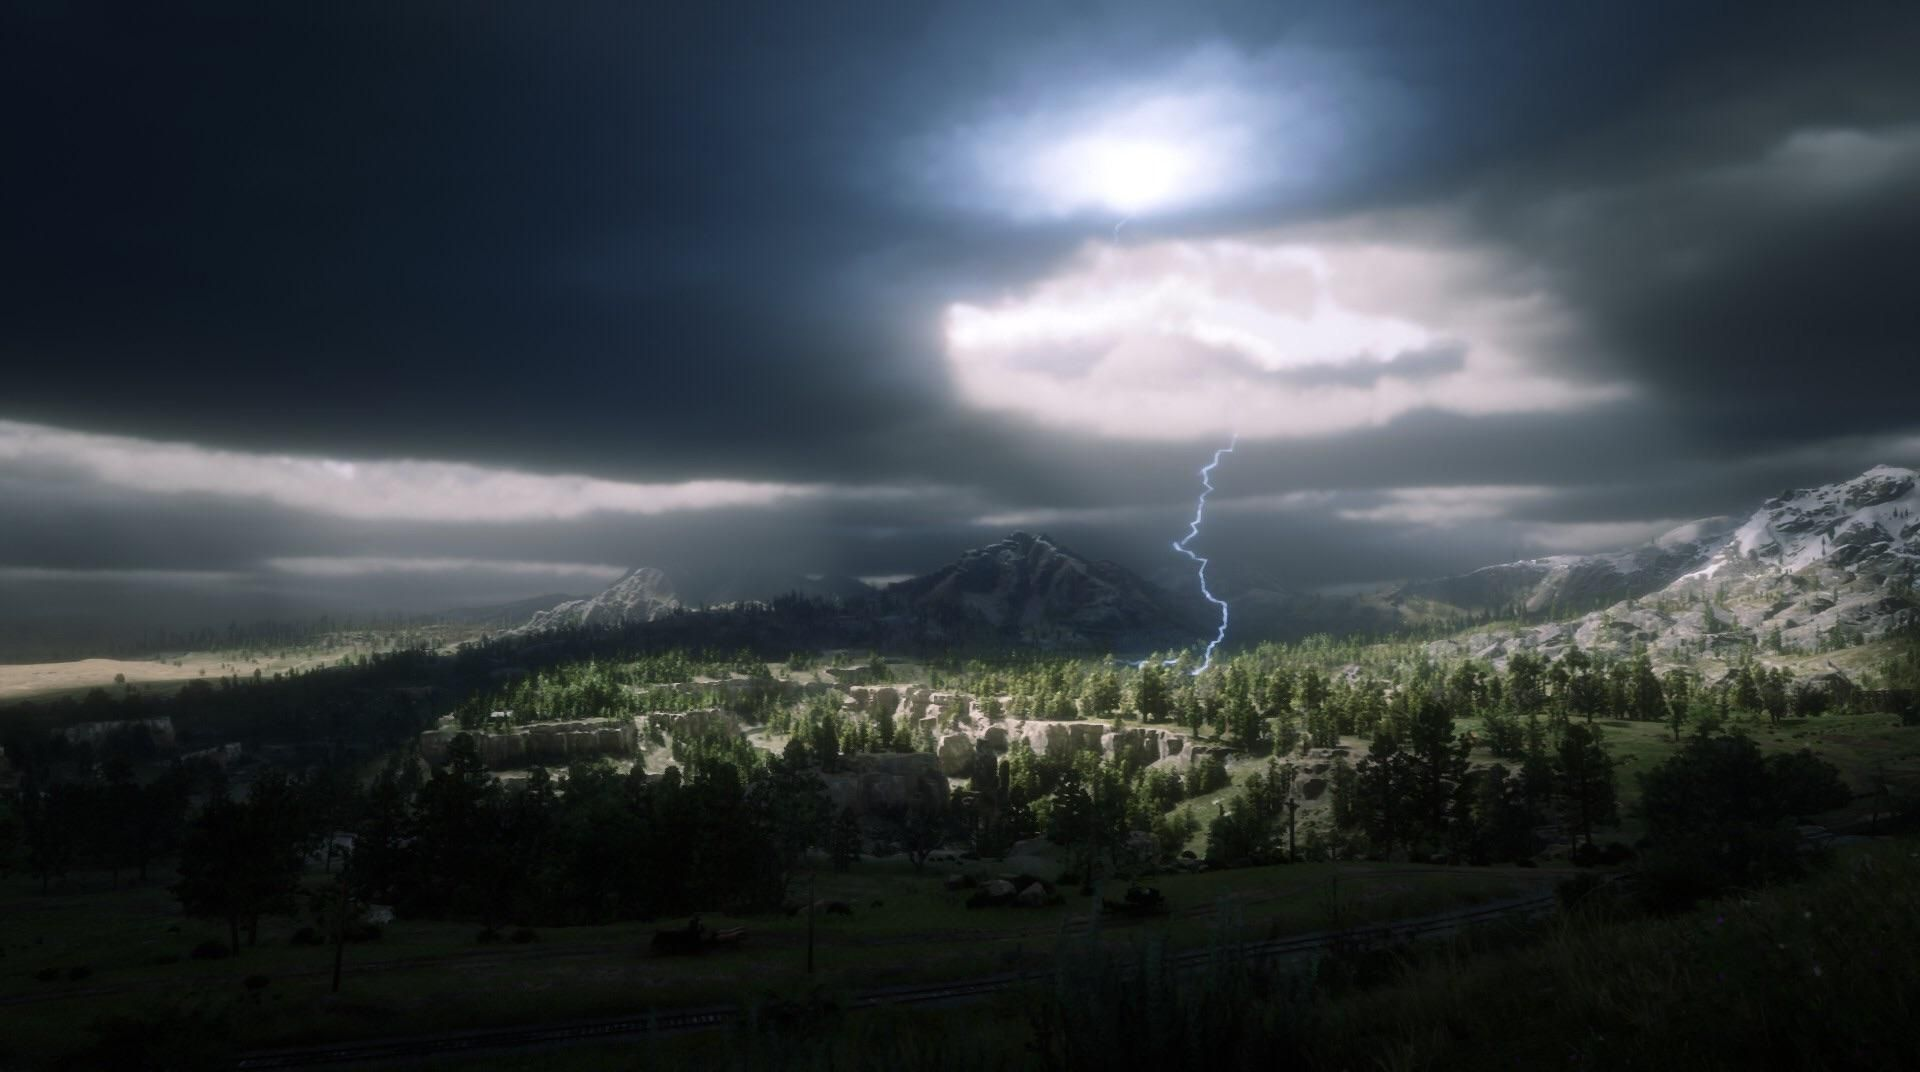 Red Dead Redemption 2 Full Hd Wallpapers Top Free Red Dead